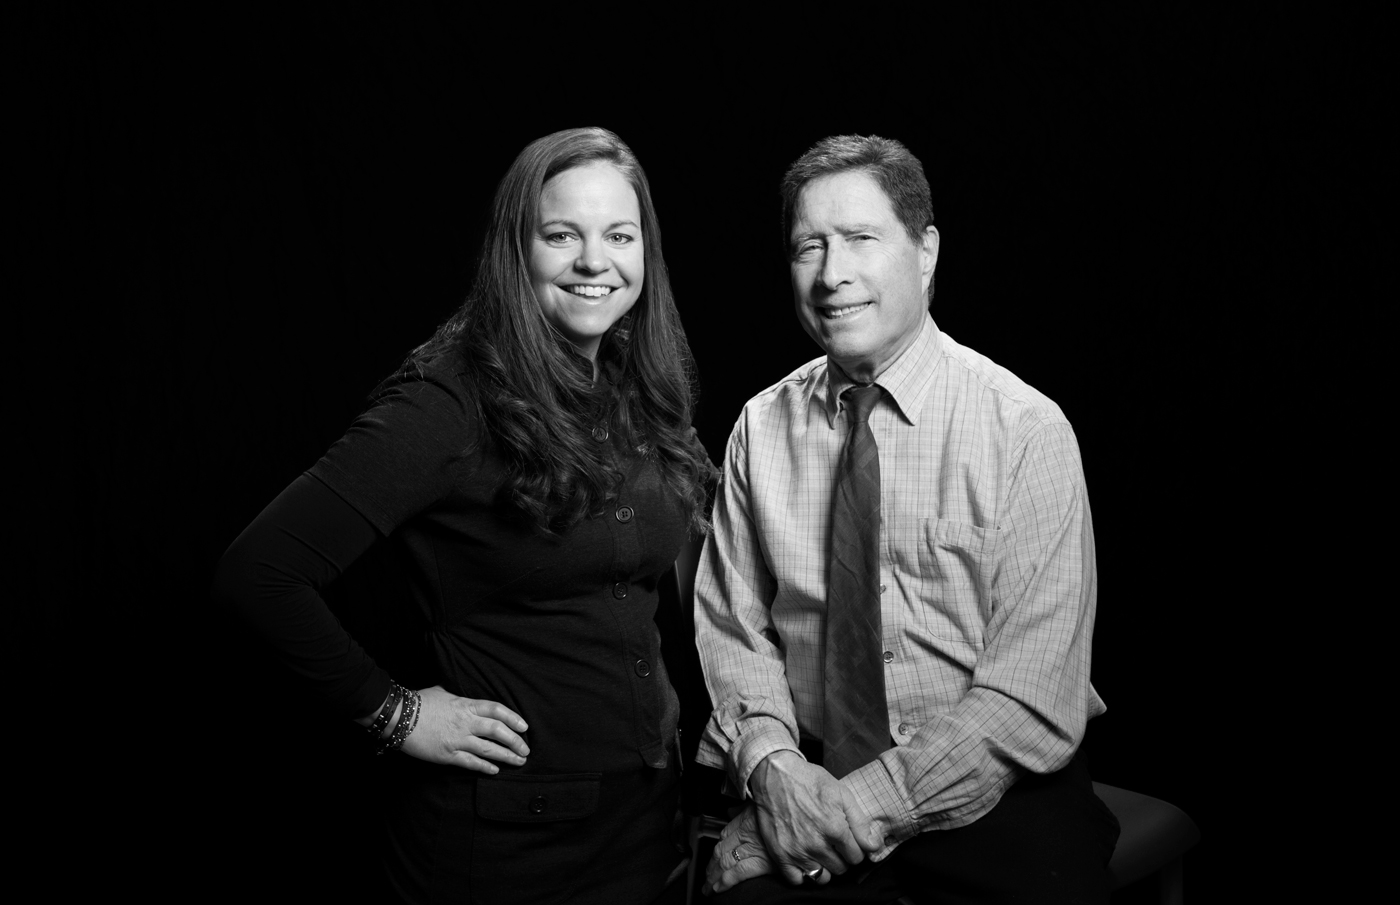 Erinn McQueen and Dr. Edward Keystone for Sinai Health magazine.